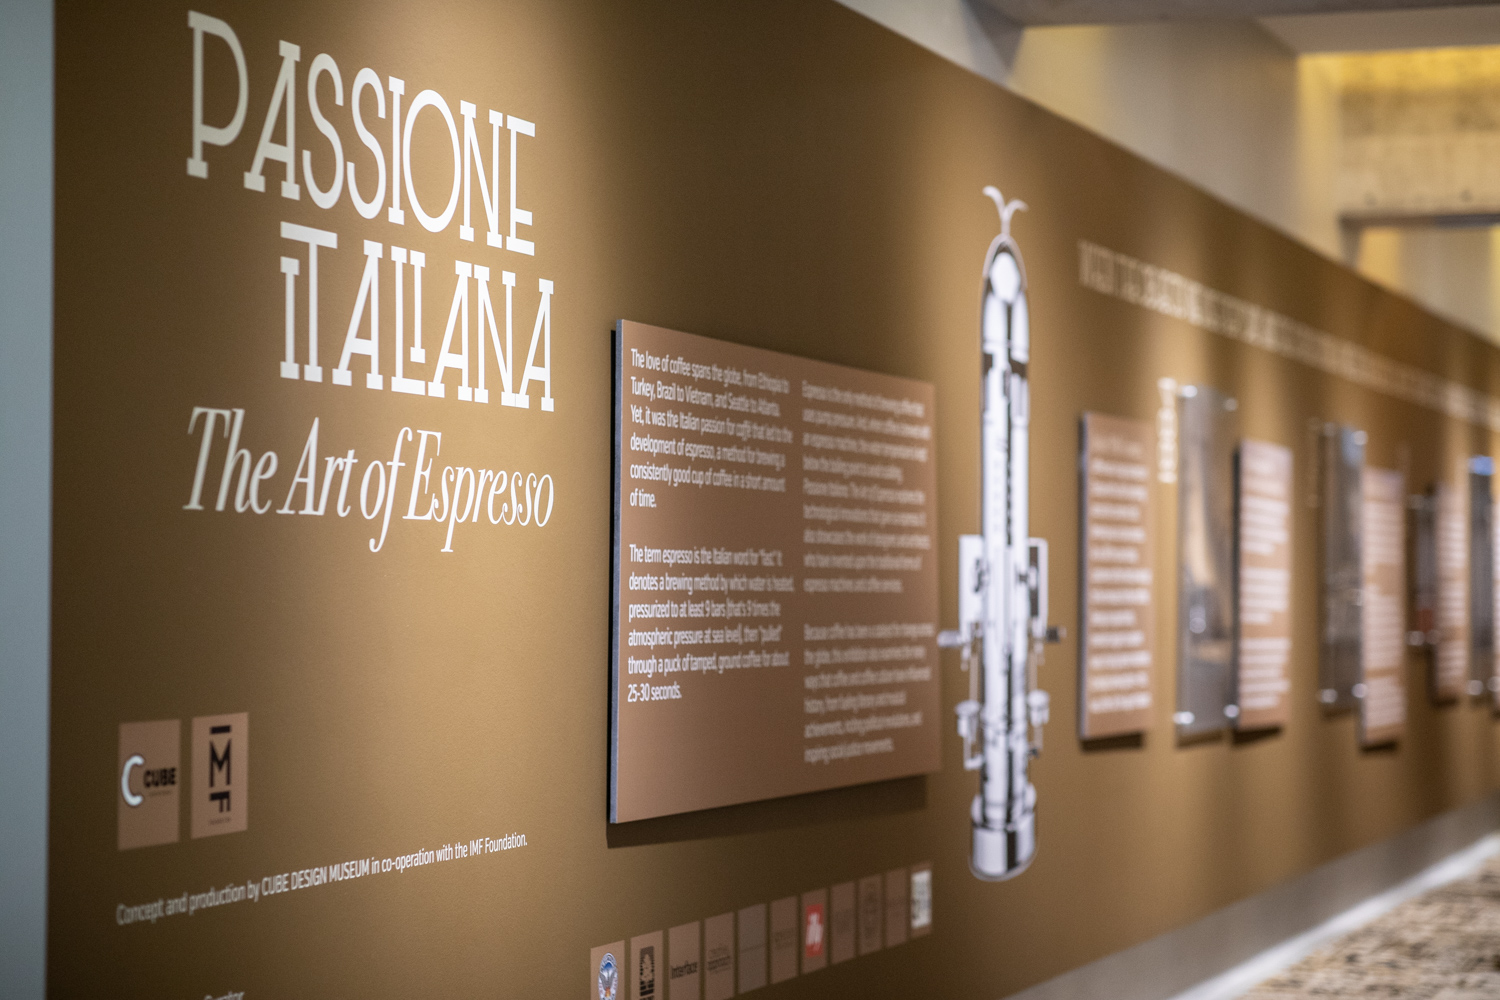 Another view of the  Passione Italiana  exhibition at MODA.